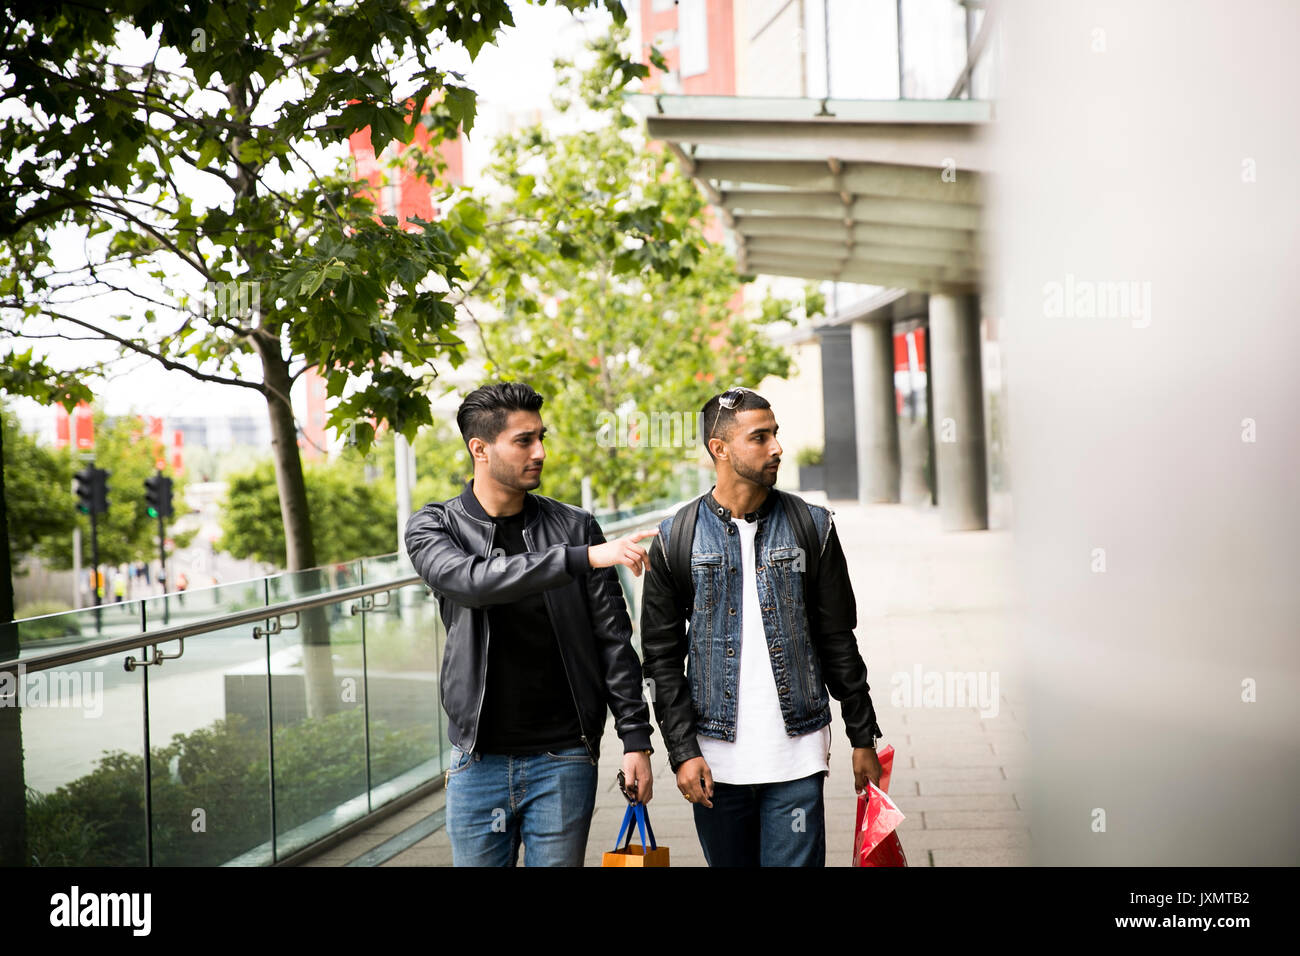 Two young men, walking past shops, pointing in shop window Stock Photo